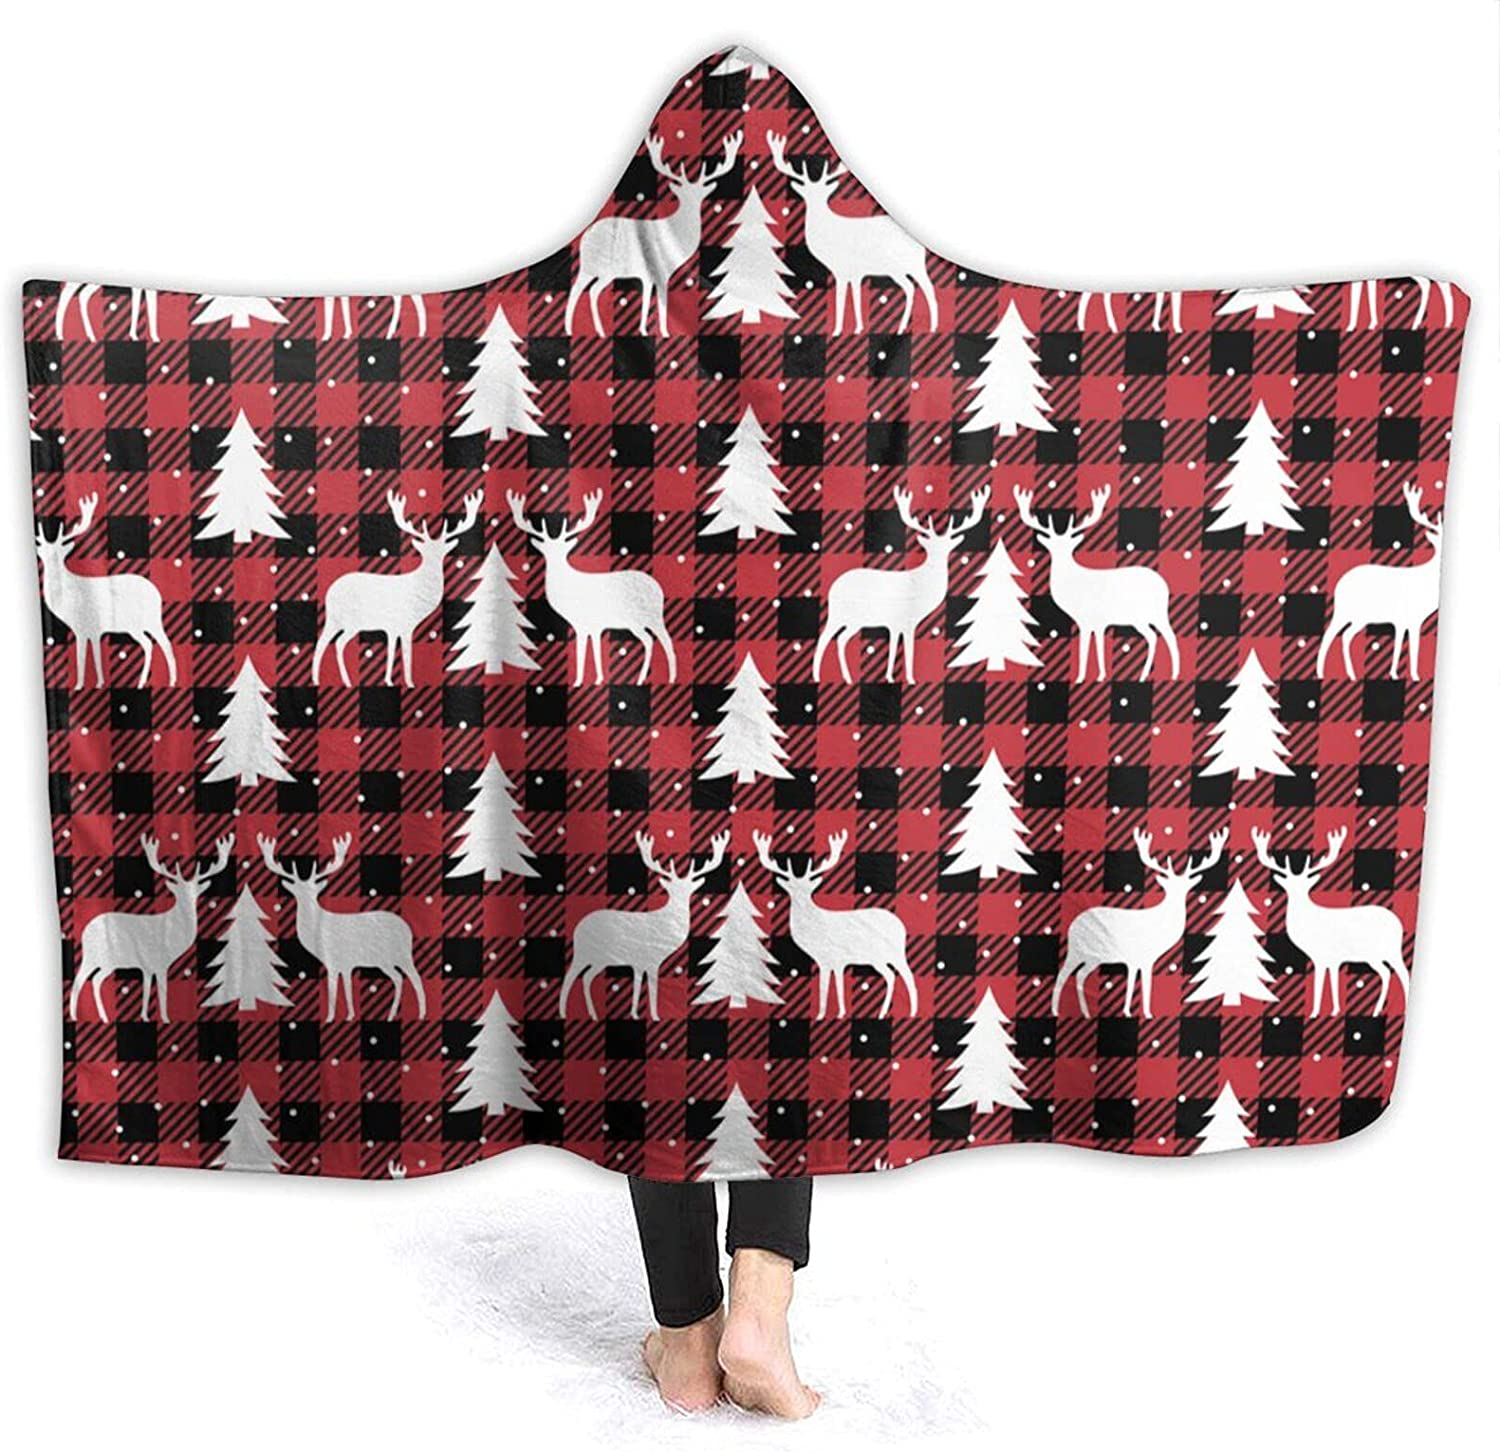 Hooded Blanket Christmas Pattern Super sale period limited and Wearable Fla Be super welcome Buffalo Plaid